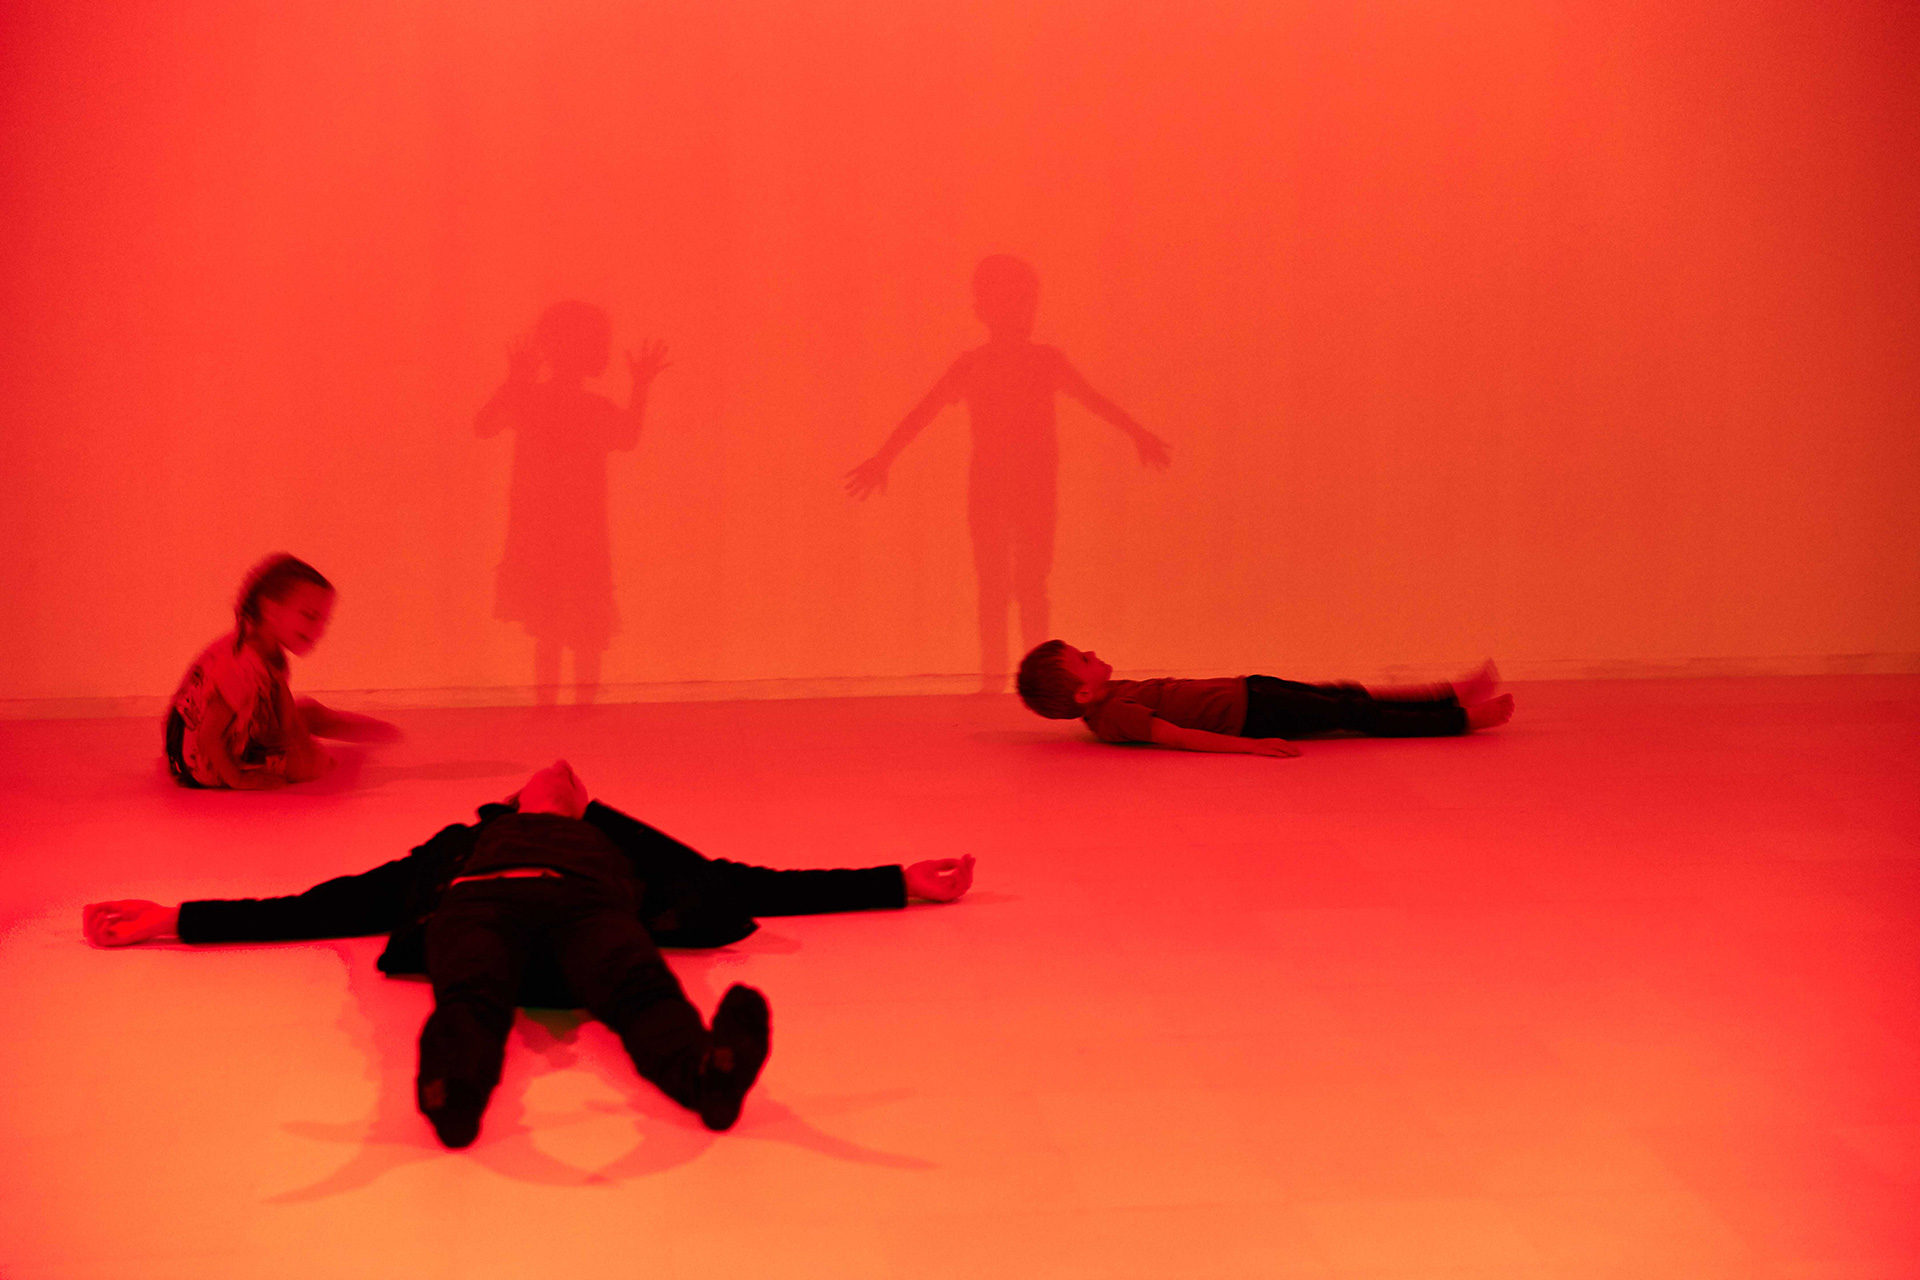 Visitors lie down in the vacant white cube| Presence | Daan Roosegaarde | Groninger Museum| STIRworld